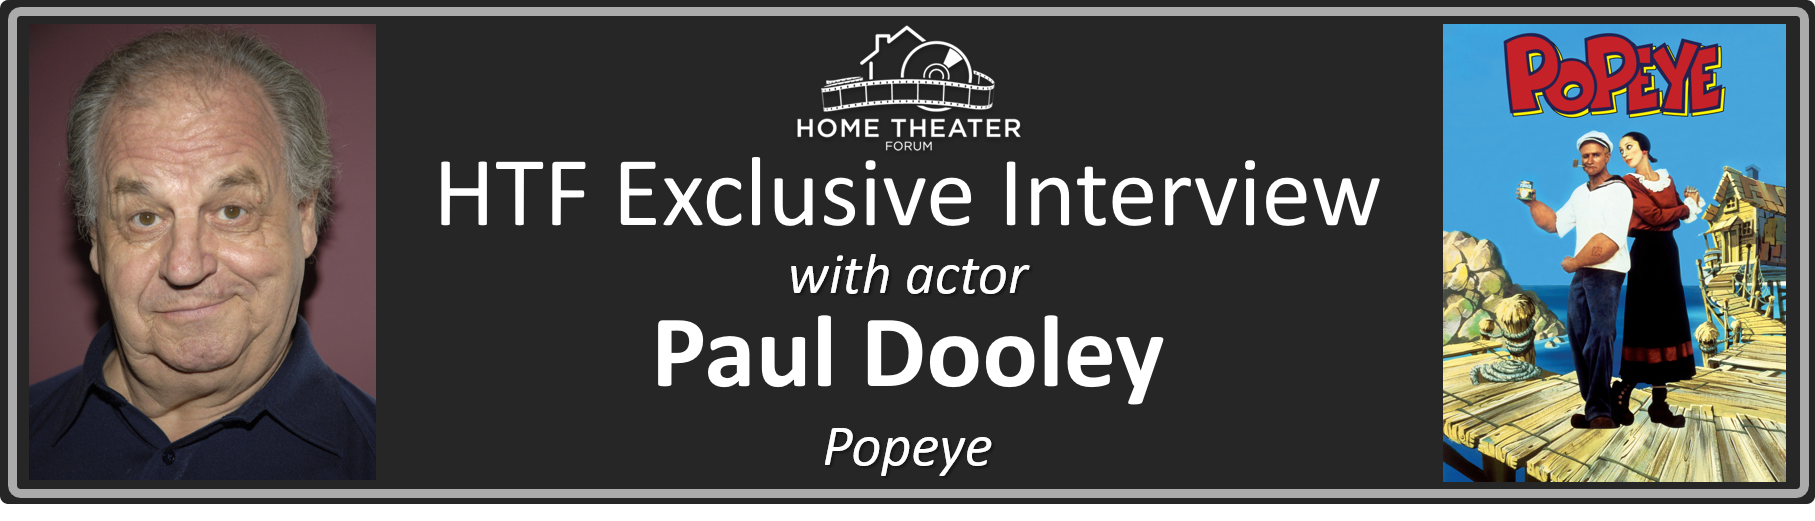 HTF Interview with Paul Dooley.png